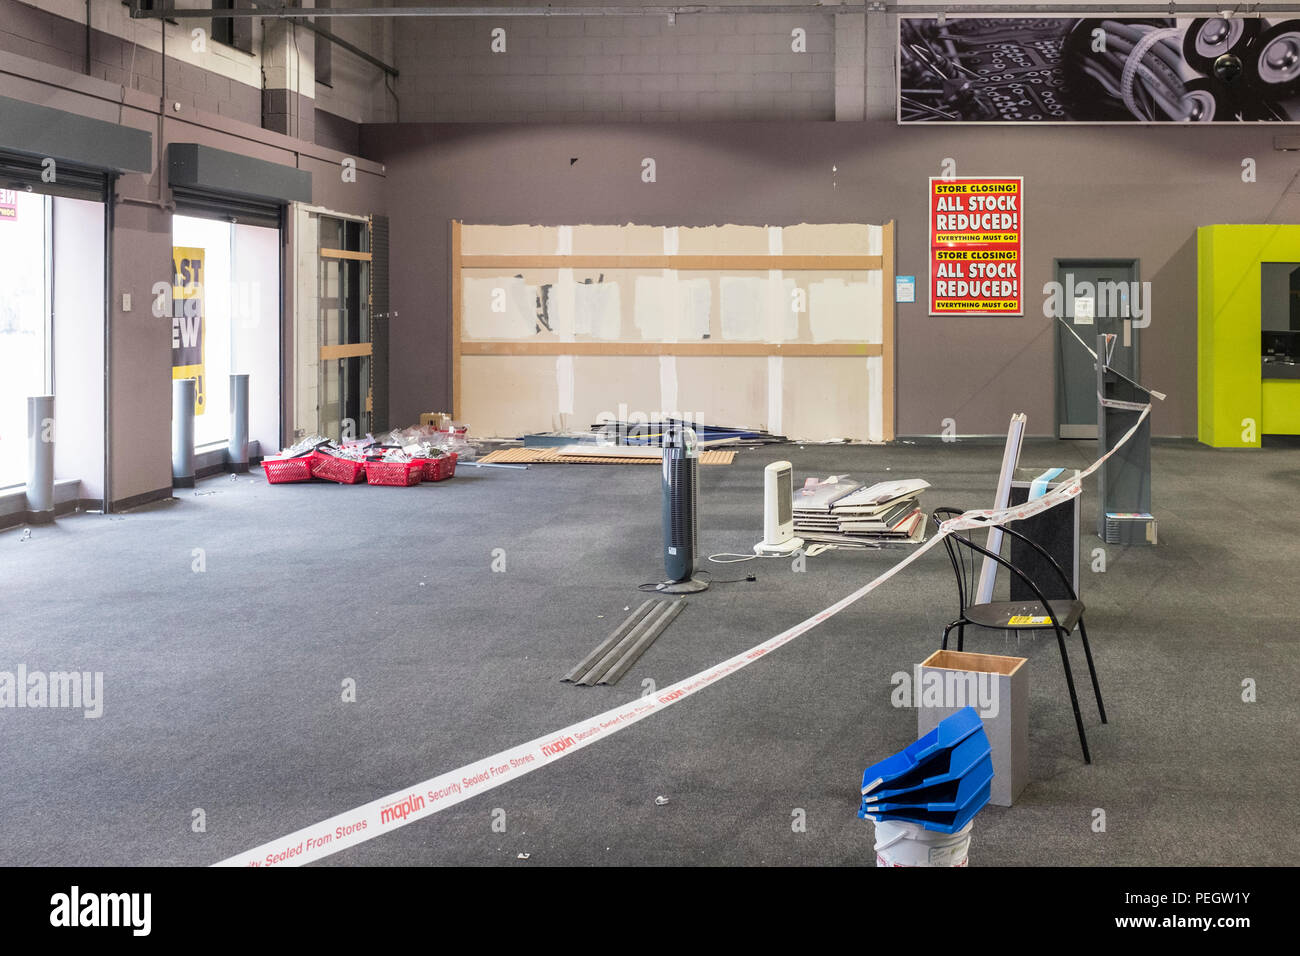 Inside of bankrupt Maplin electrical store, empty shelves, sad sign of the times. - Stock Image